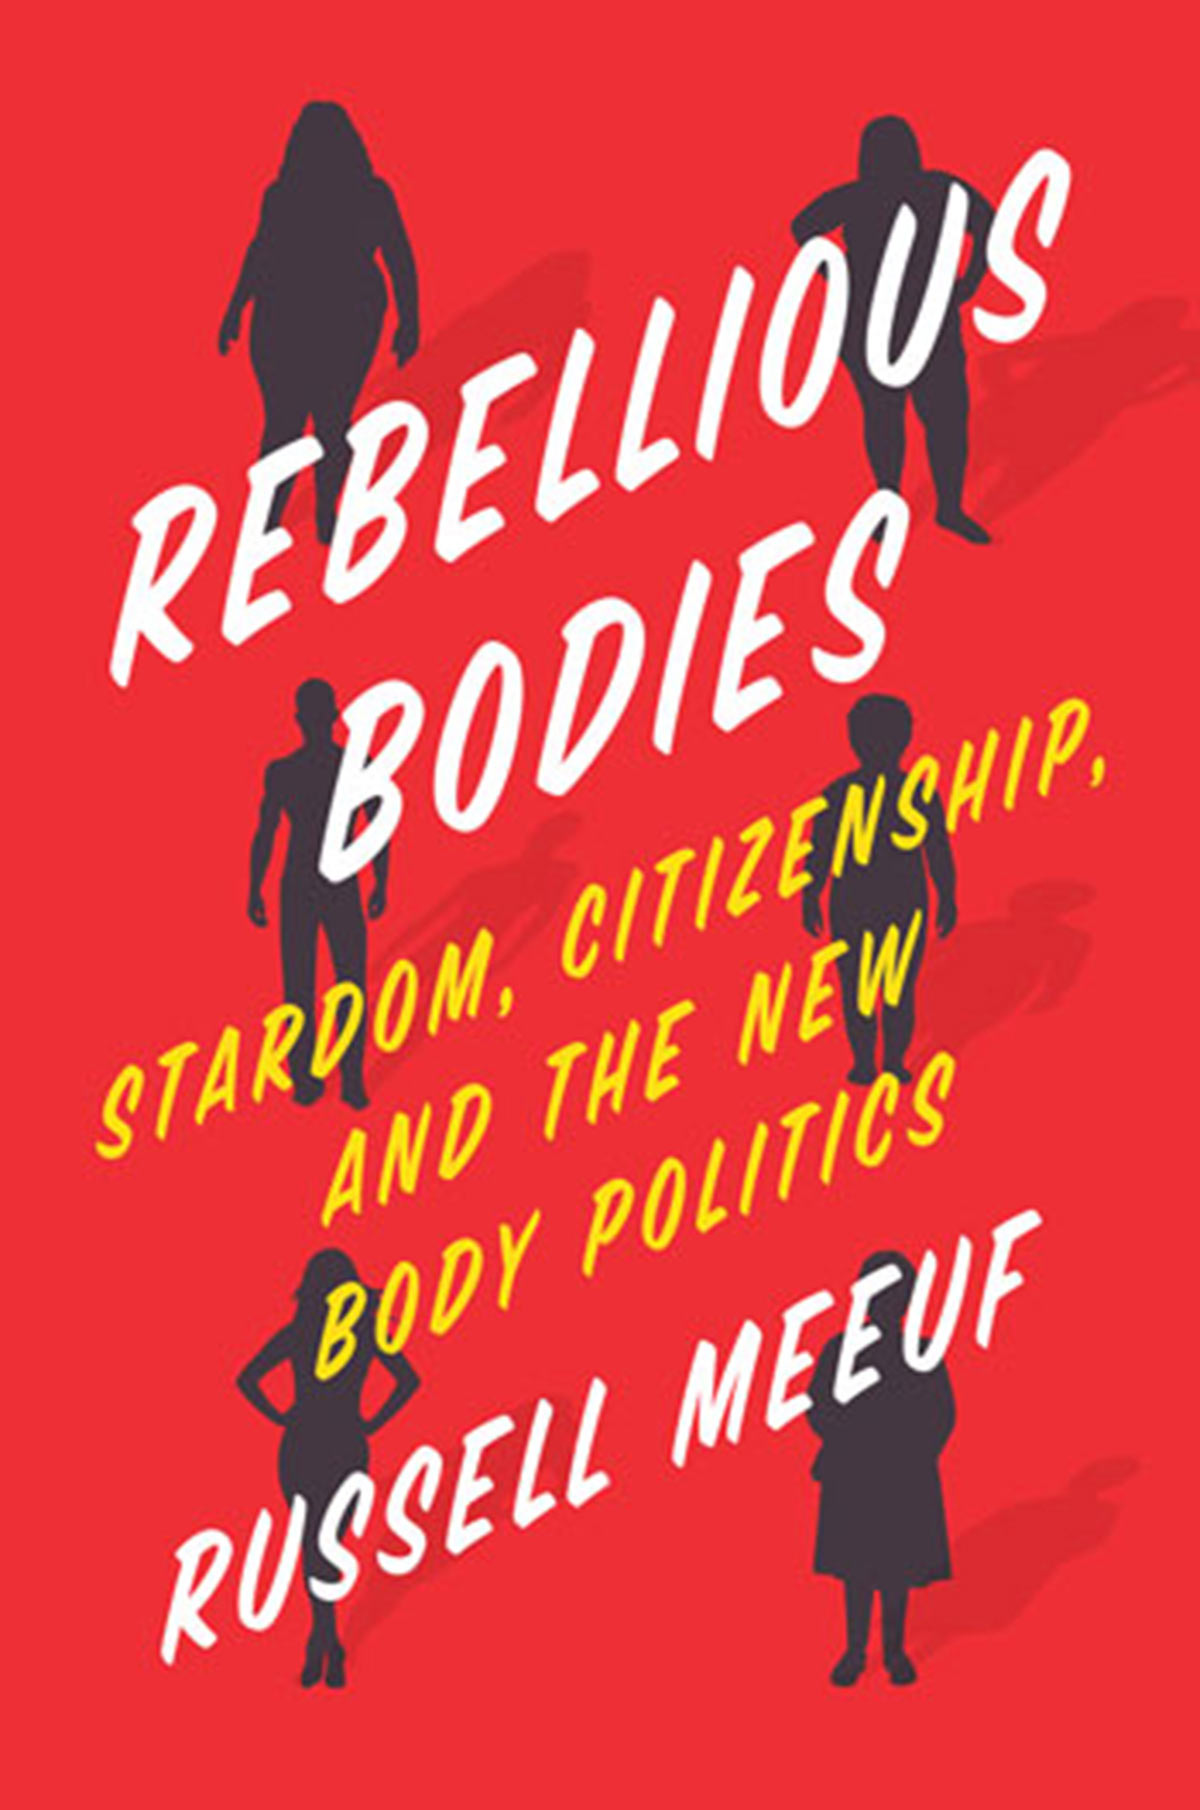 Book cover: Rebellious Bodies: Stardom, citizenship, and the new body politics by Russell Meeuf